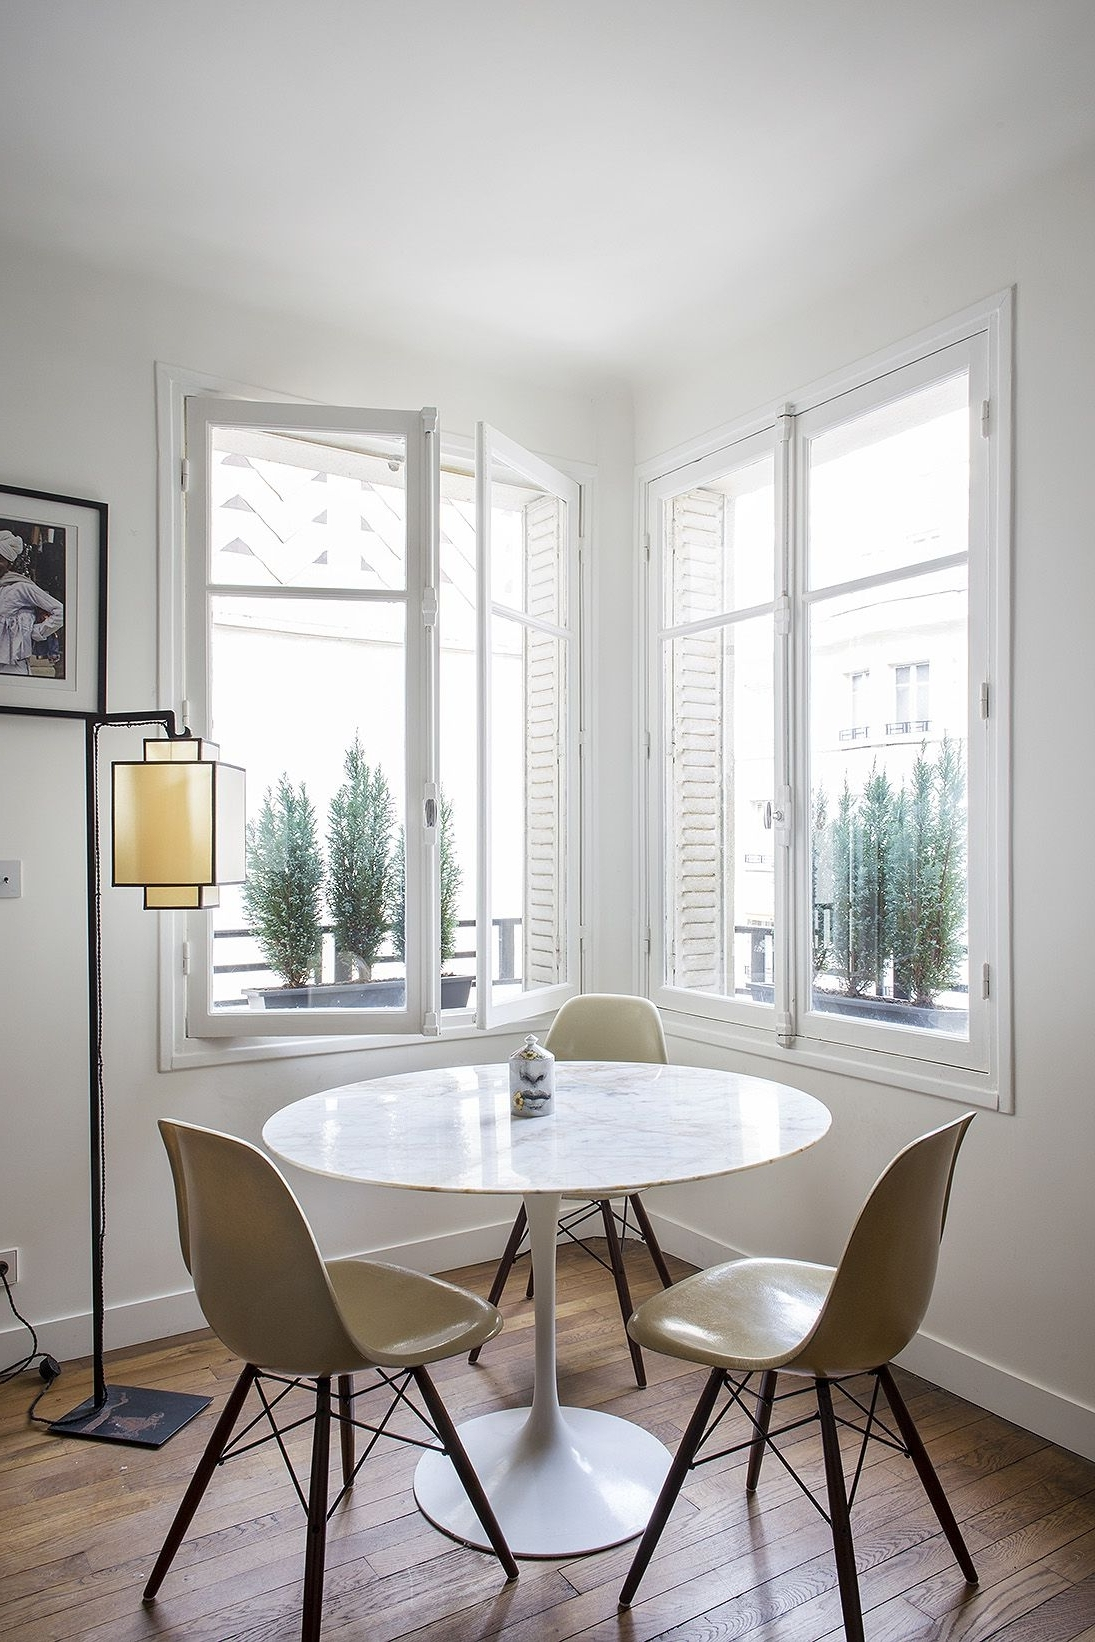 Paris Dining Tables For Most Popular 9 Small Space Ideas To Steal From A Tiny Paris Apartment (View 2 of 25)